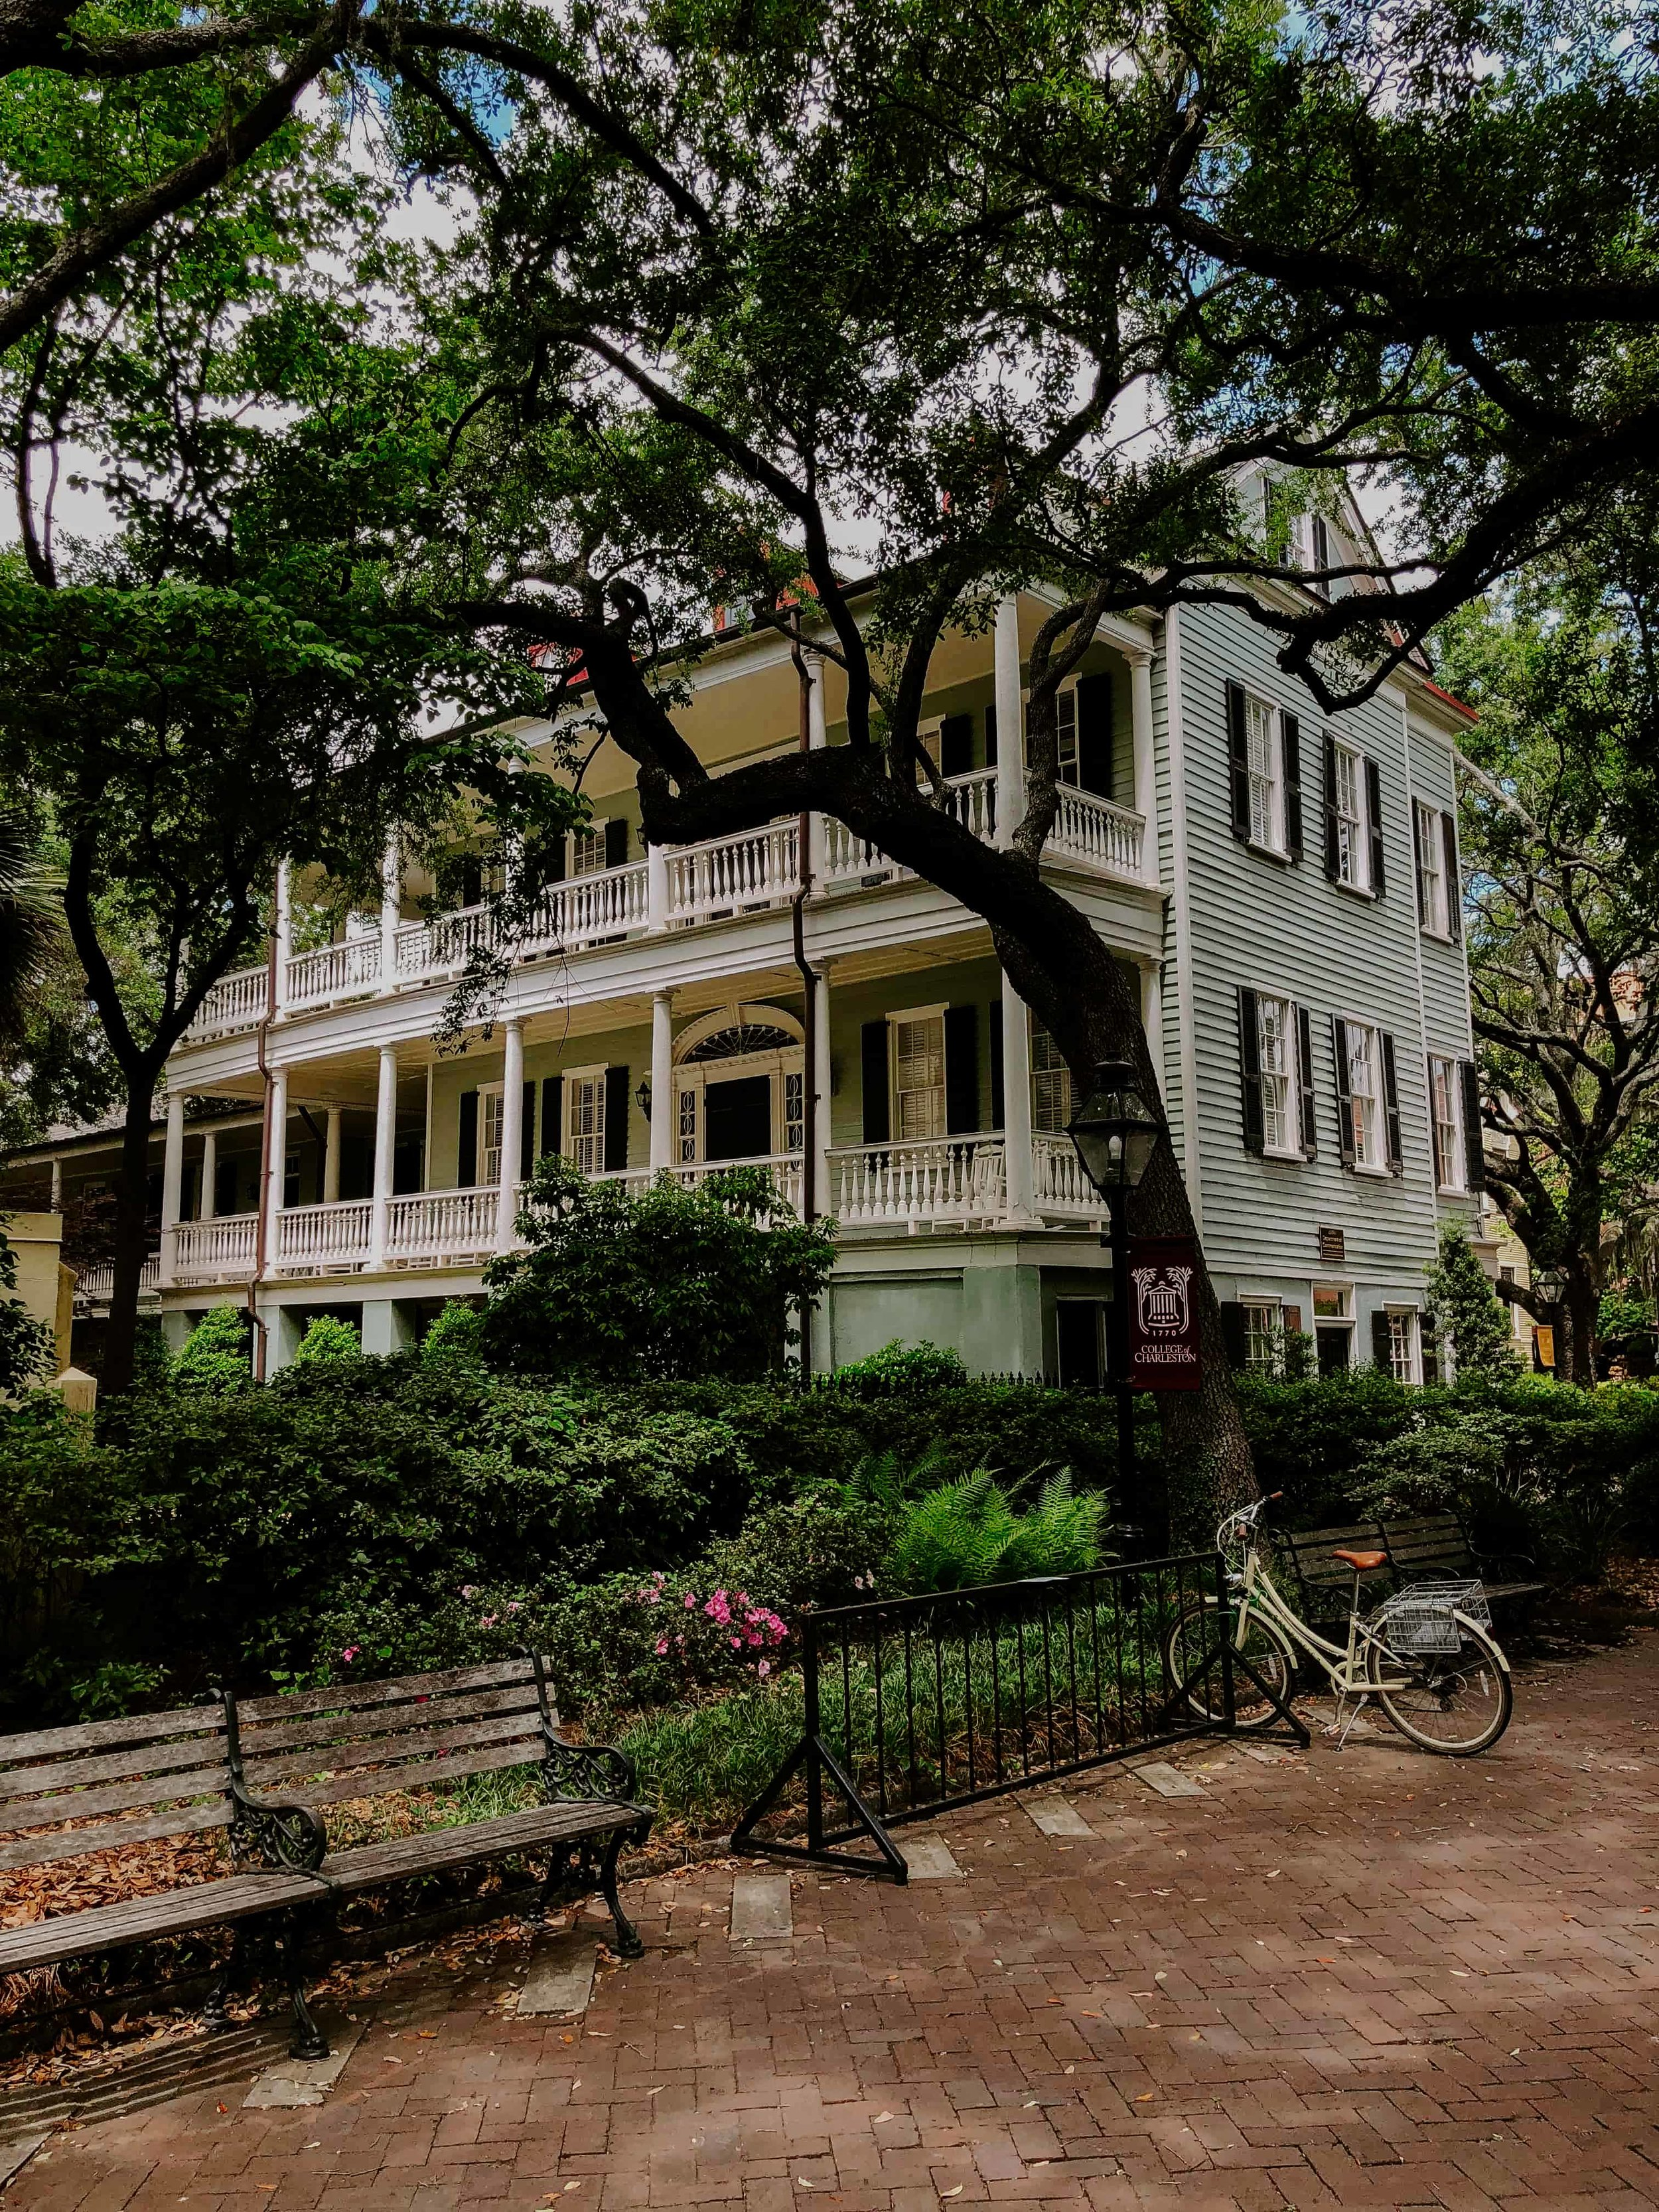 charleston-sc-city-guide-what-to-do-and-see-32.jpg